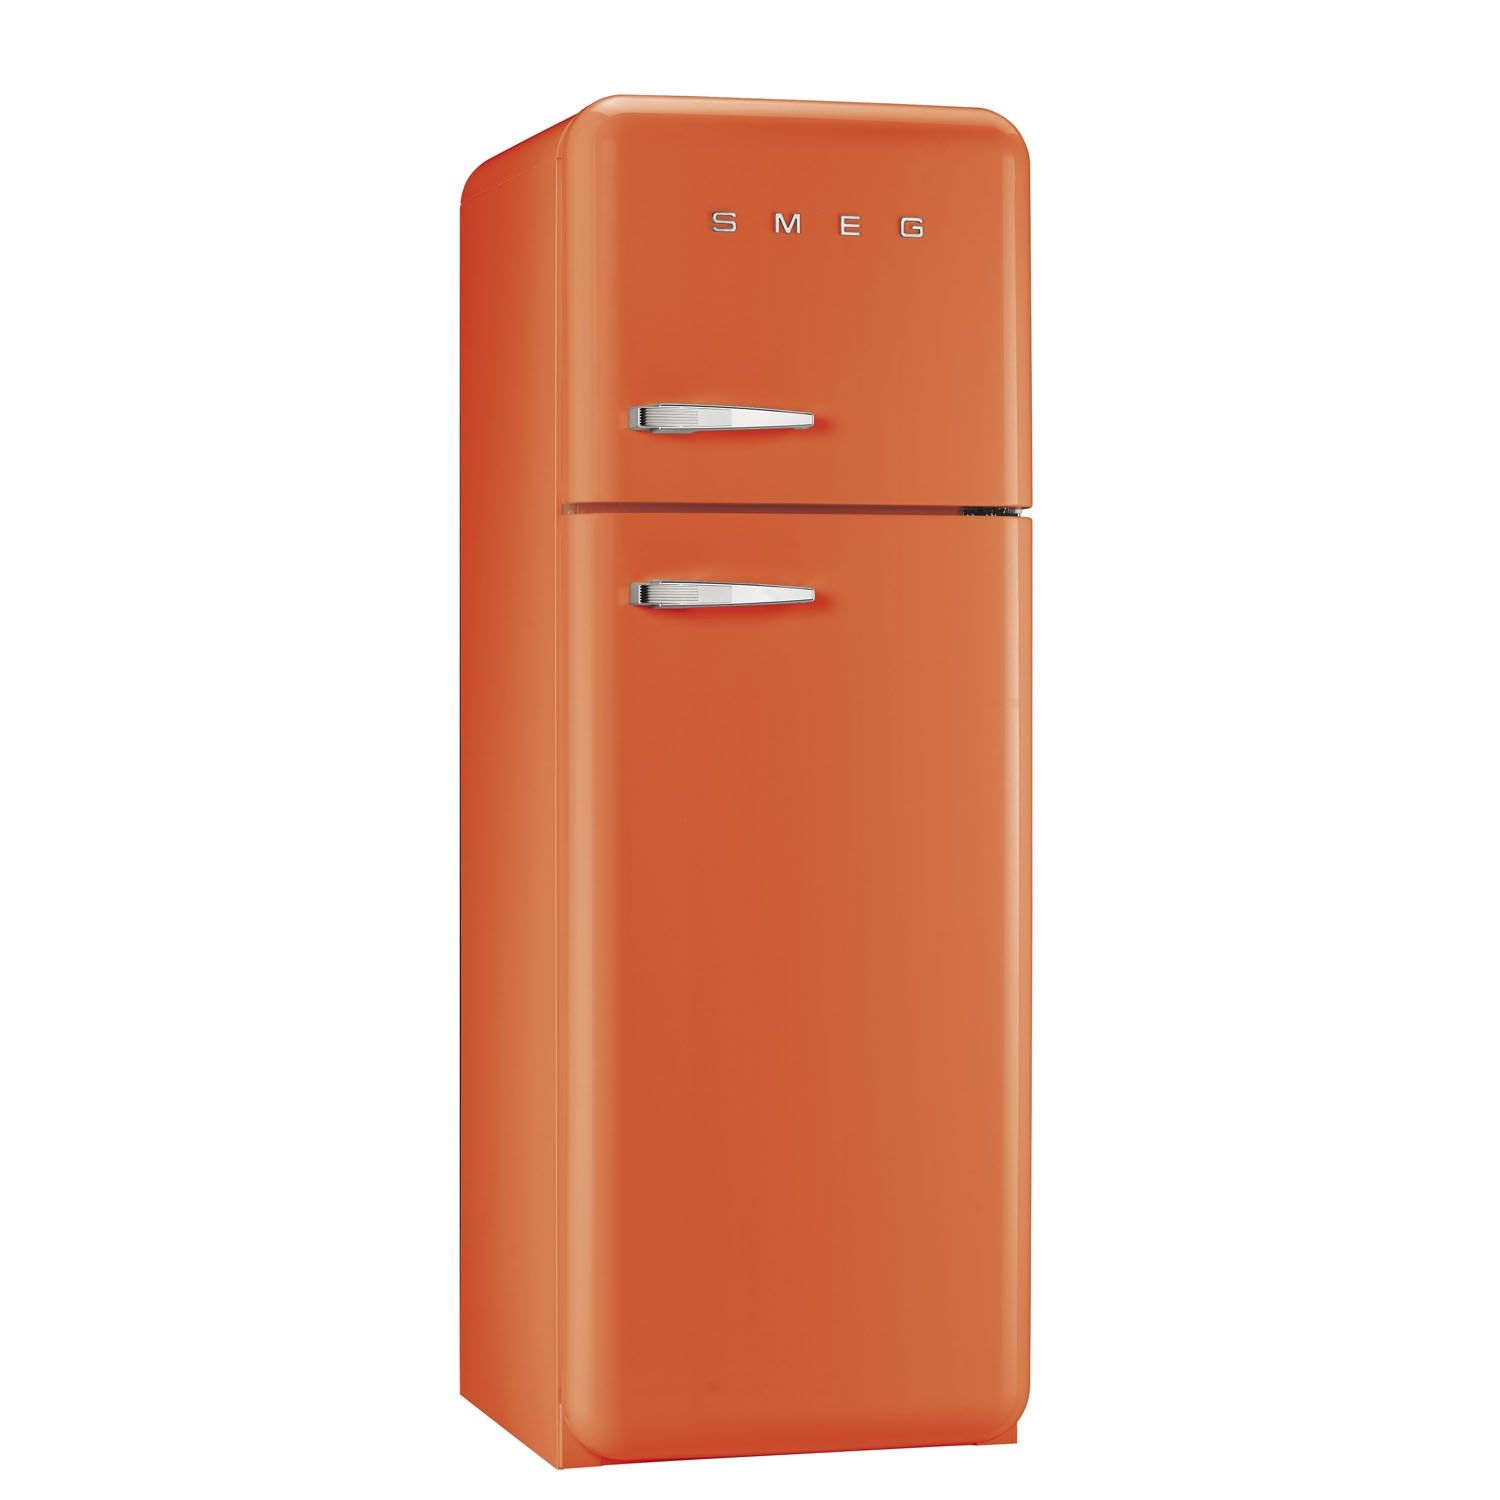 FAB30RFO 50\'s Retro Style Orange Fridge Freezer